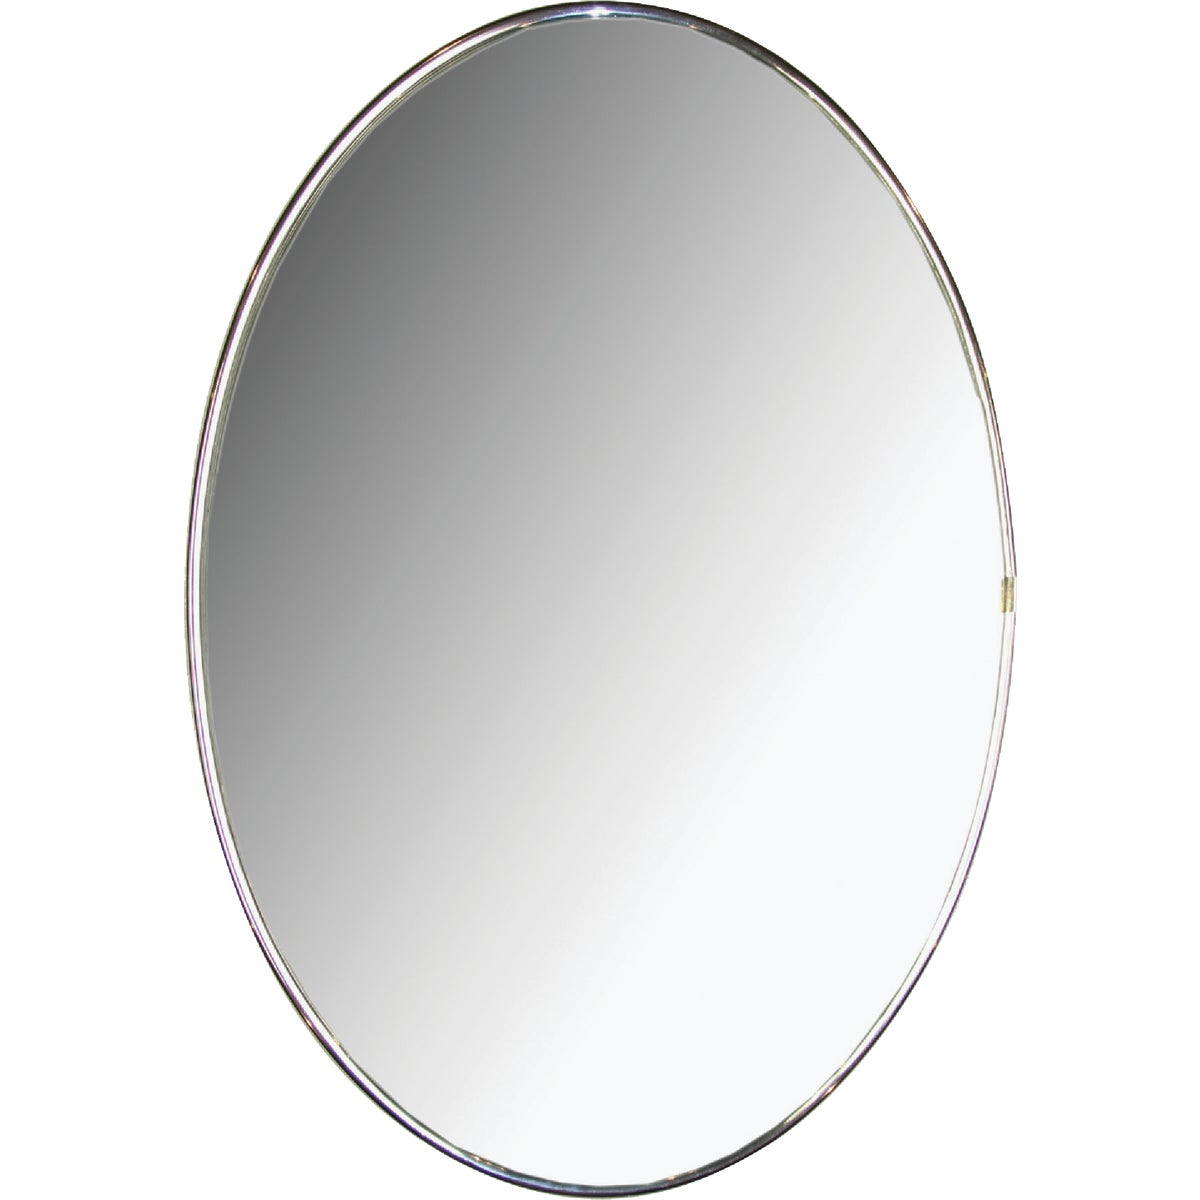 ELMVALE OVAL WALL MIRROR - 20-0011 by Home Decor Innovatns